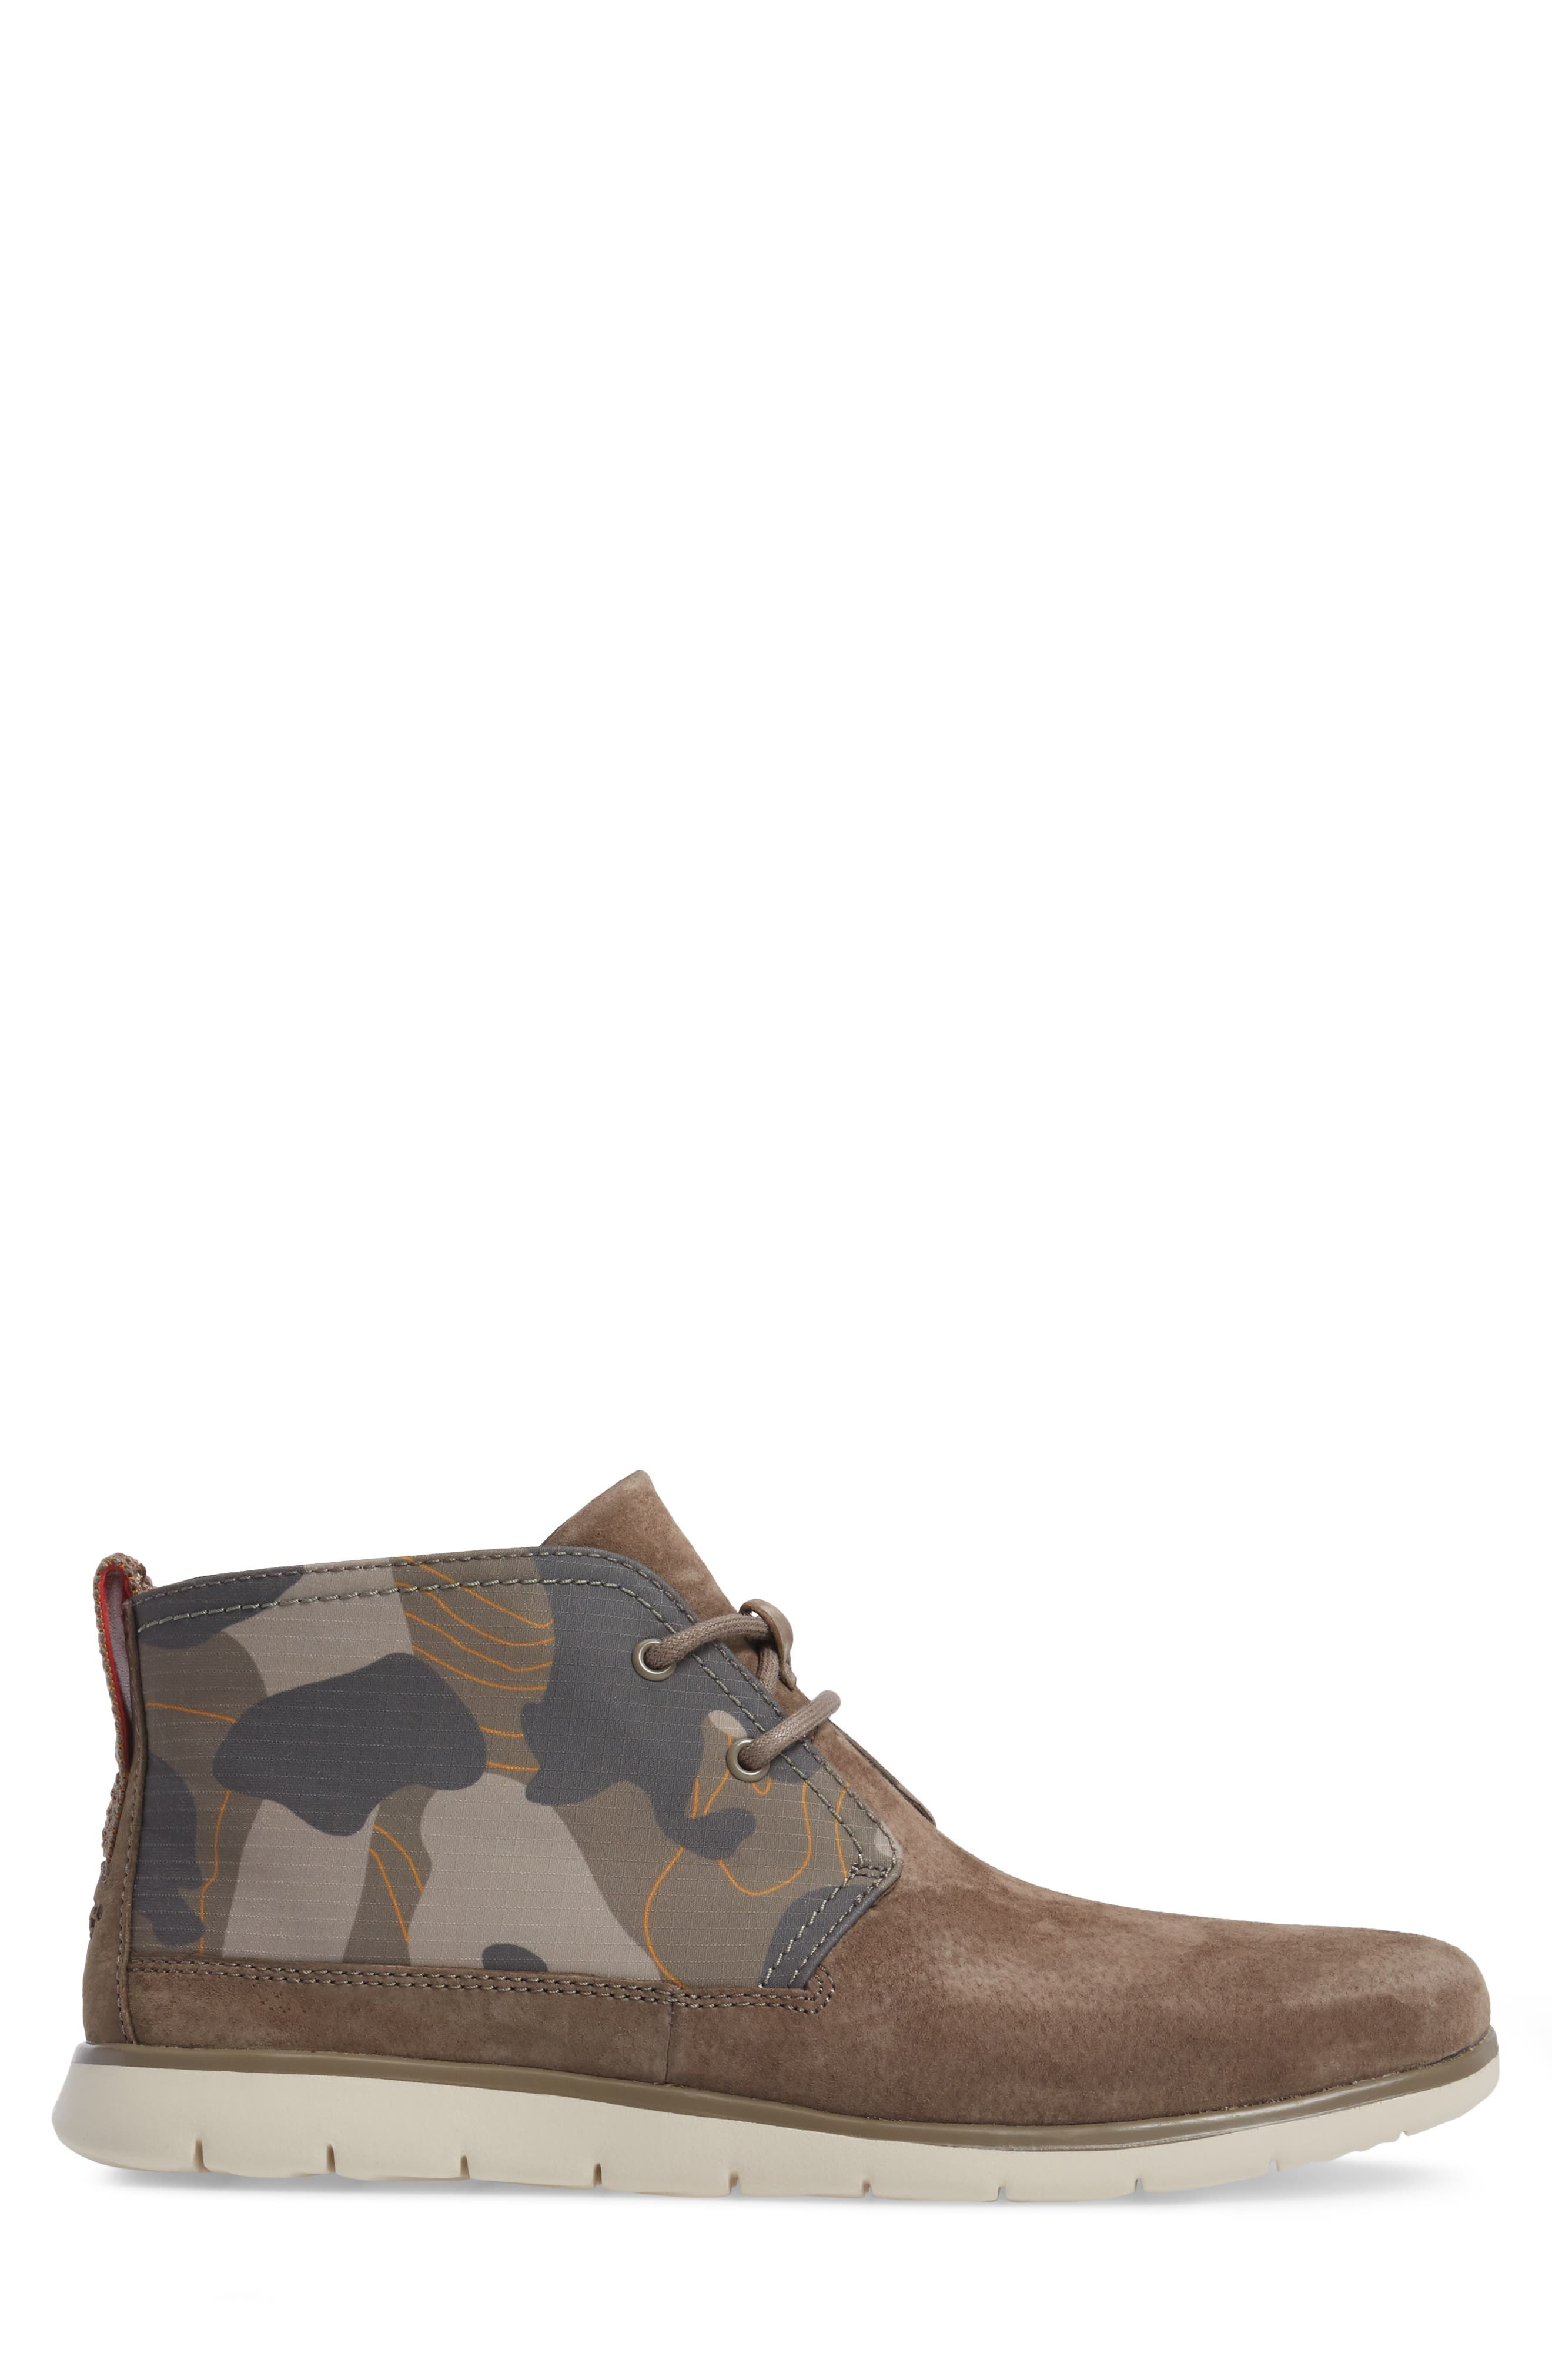 Freamon Chukka Boot,                             Alternate thumbnail 3, color,                             Brindle